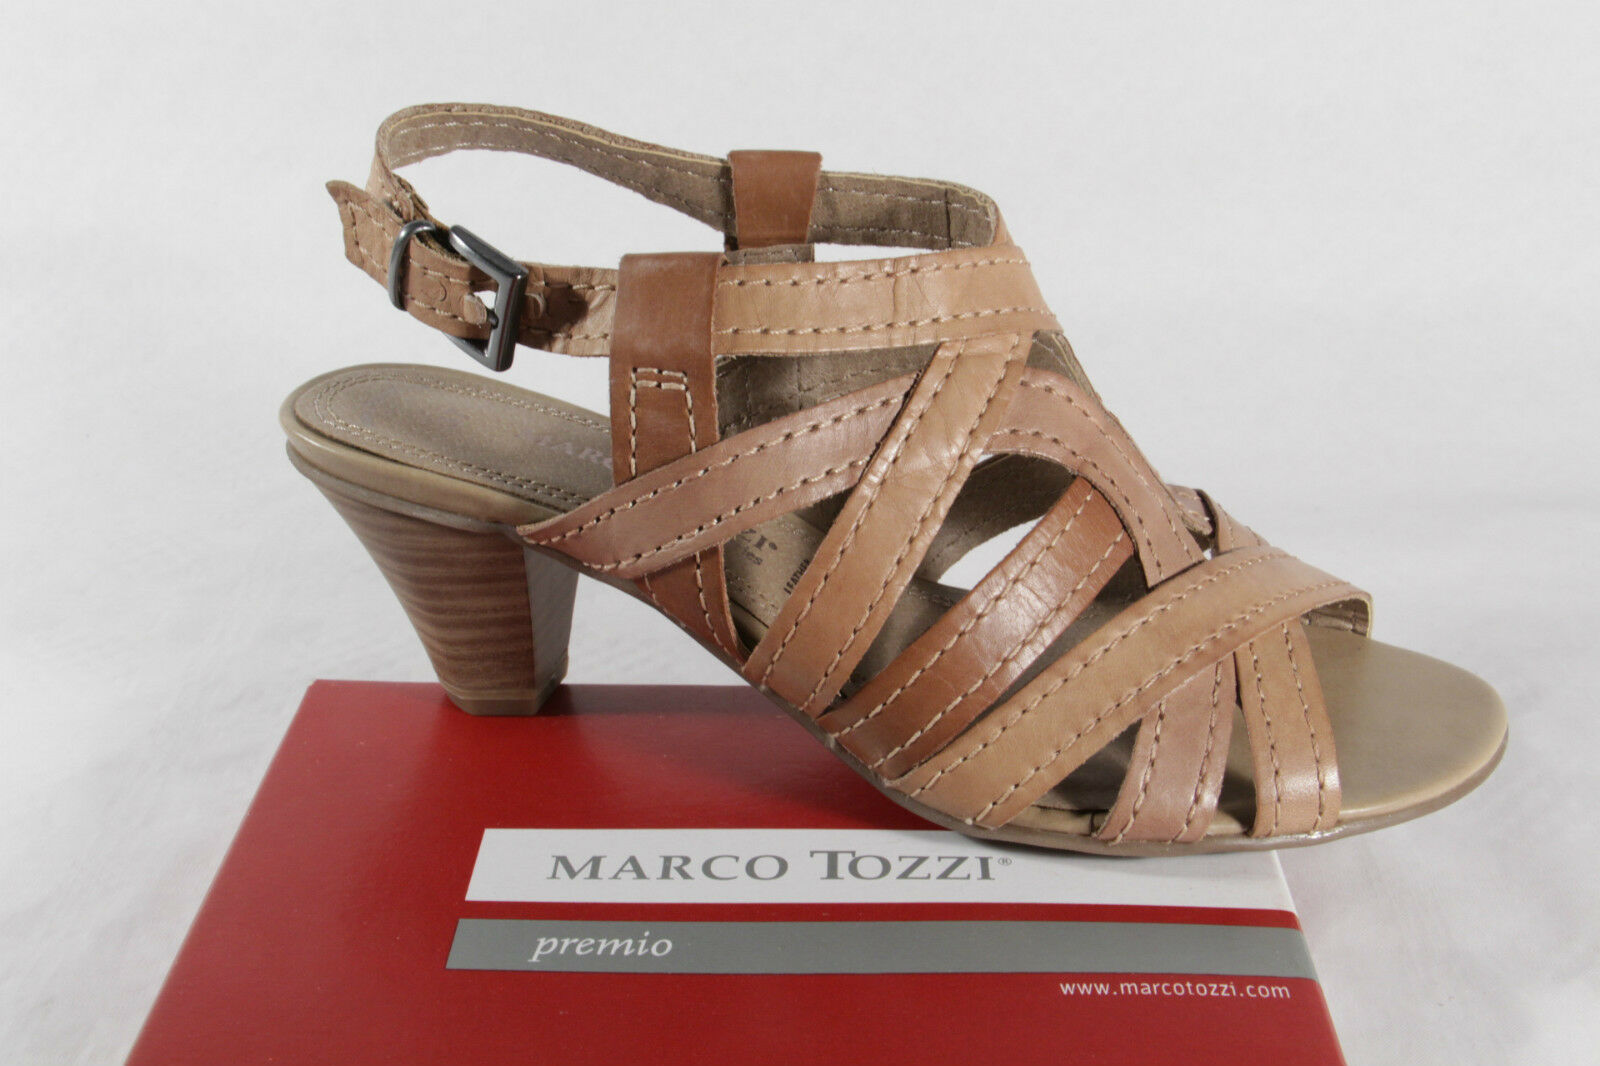 Marco Tozzi Women's Sandals Sandals Sandals High-Heeled Light Brown, Real Leather New 753c69